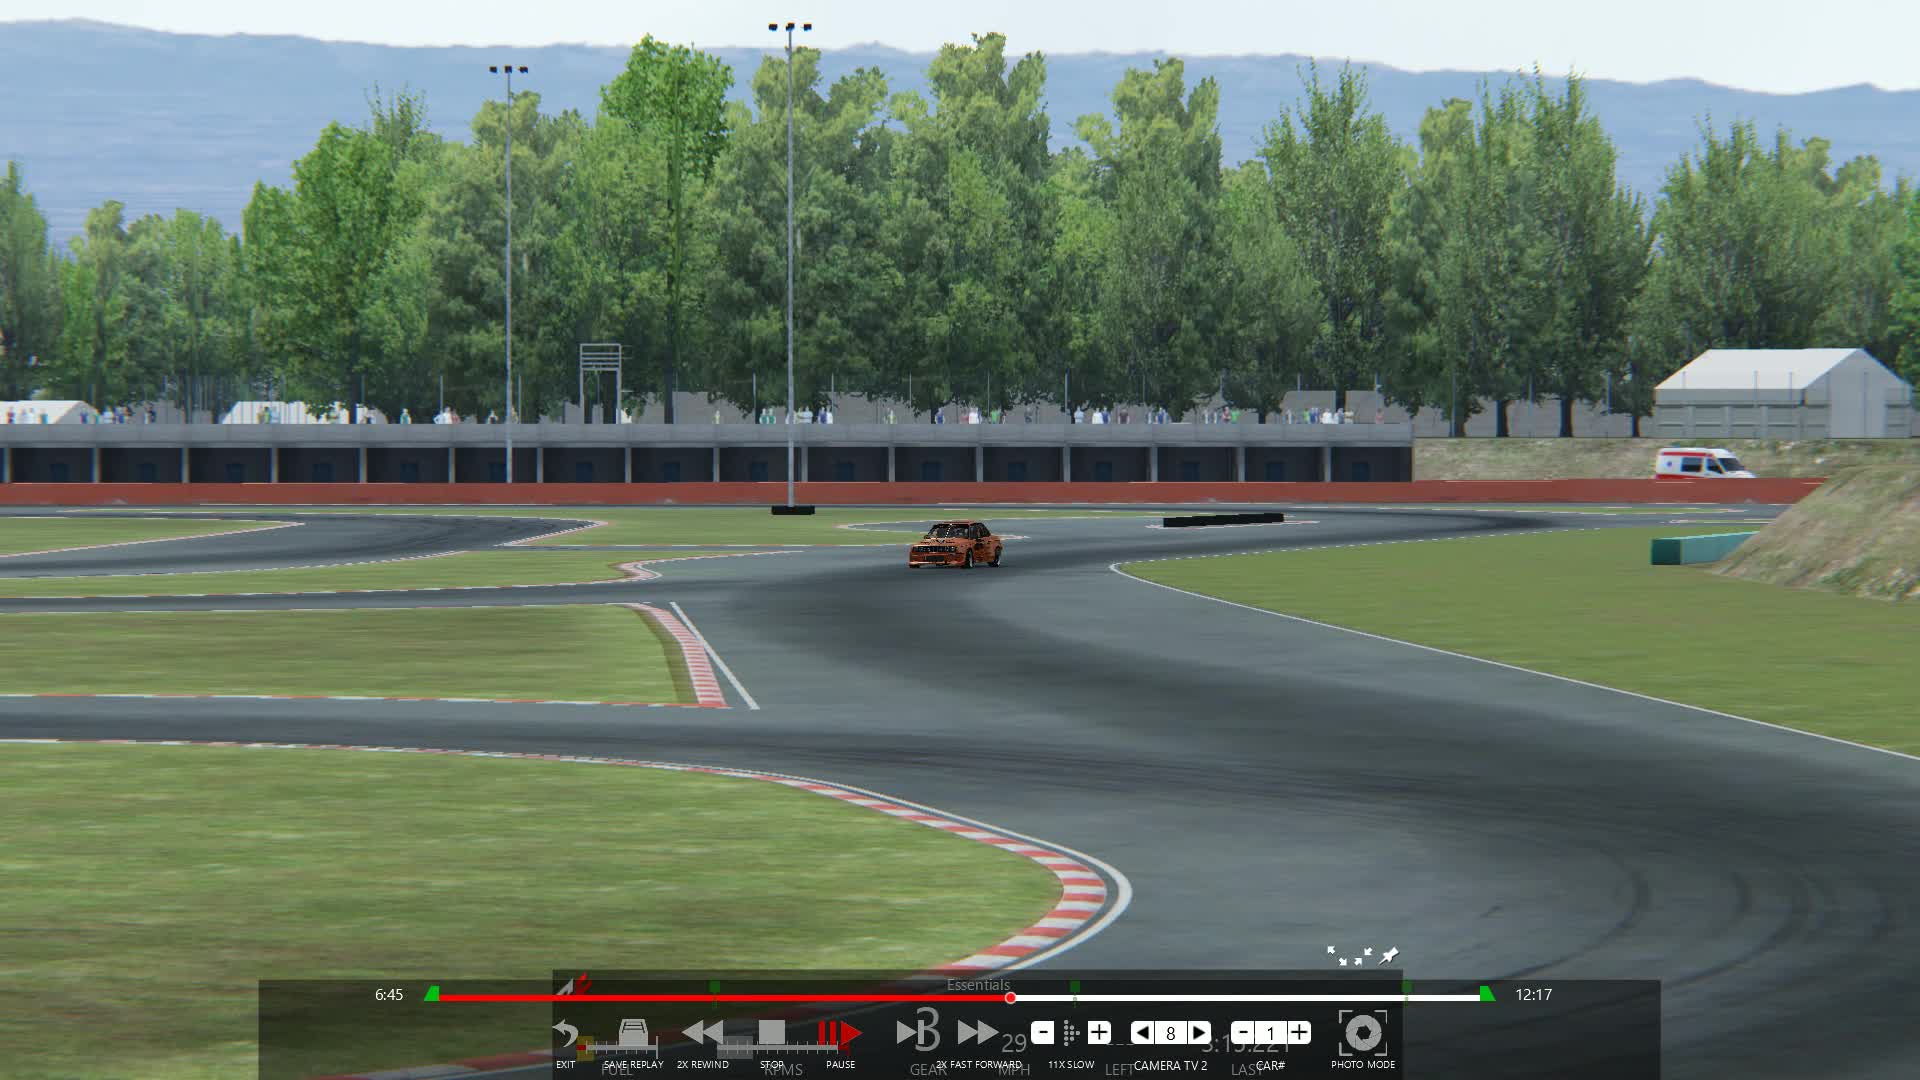 ac, assettocorsa, drift, fd, formulad, formuladrift, smooth, transition, smooth (until the end) GIFs